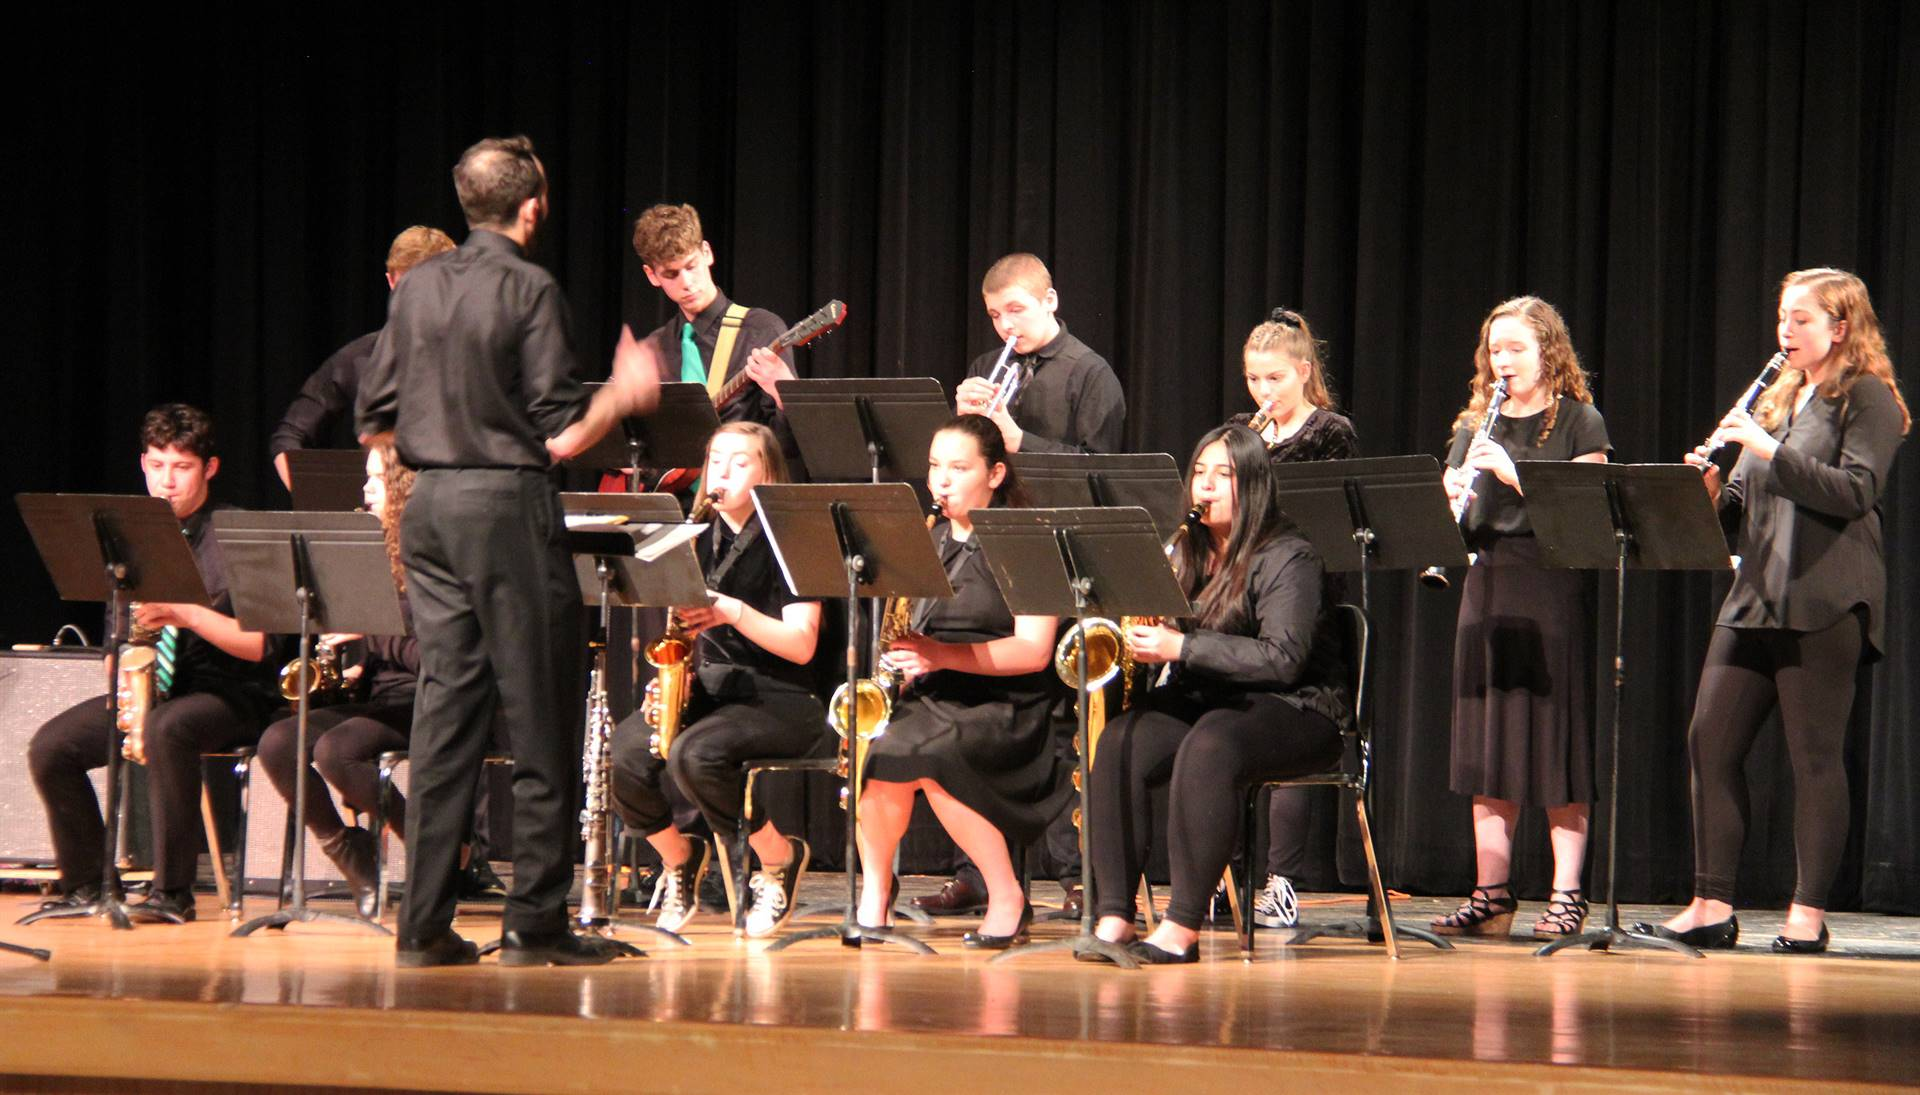 Students performing in Pops Concert 17